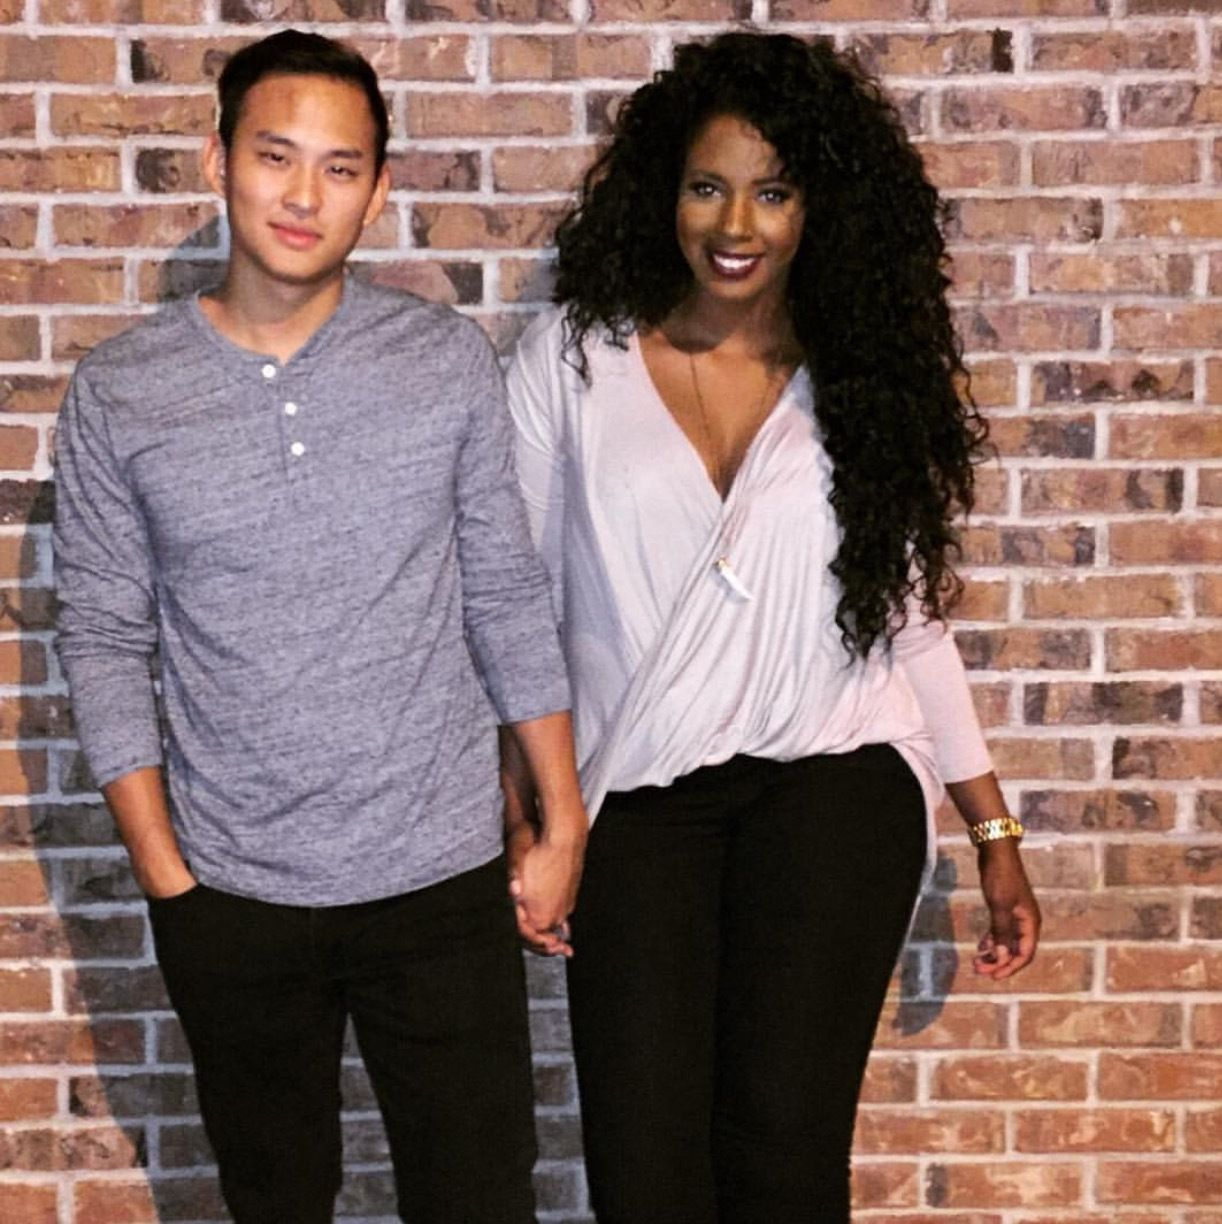 onondaga asian single men Hey asian men  do you do your shopping, work or socializing online why not add dating join afroromance today to meet sexy black women single and sexy black women are online at afroromance and waiting to meet asian men, just like you.